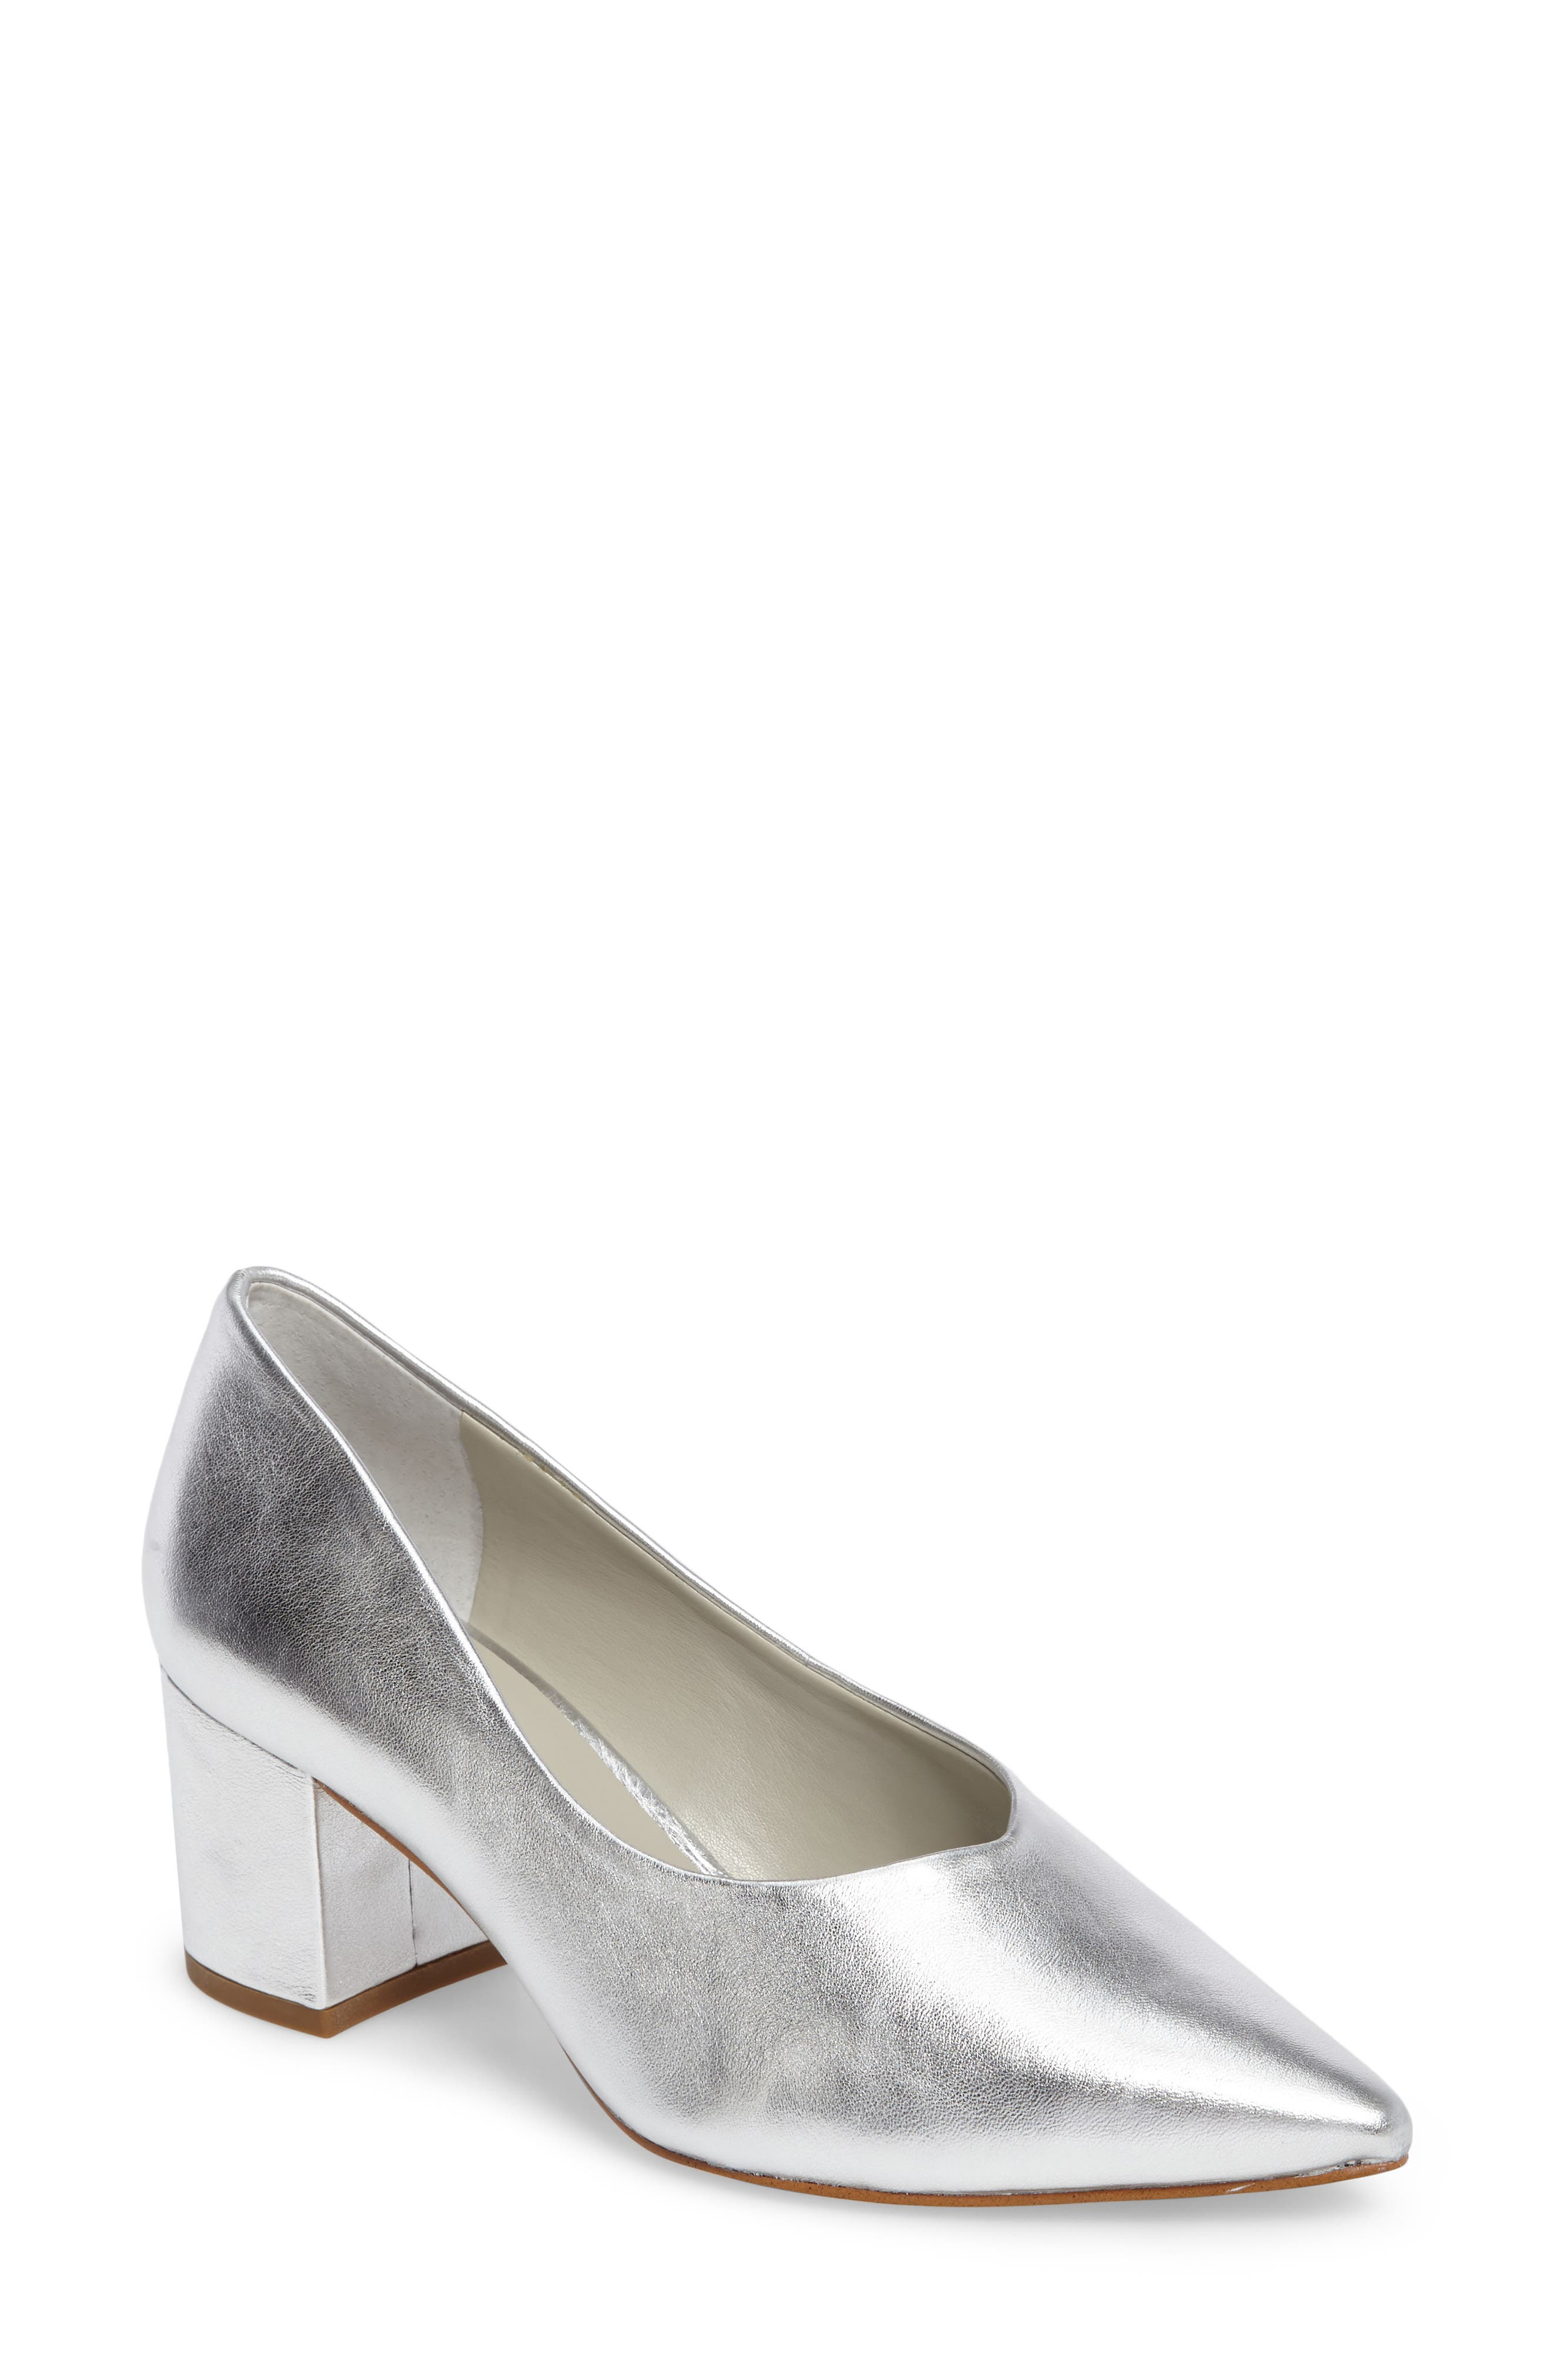 Alternate Image 1 Selected - 1.STATE Jact Pointy Toe Pump (Women)